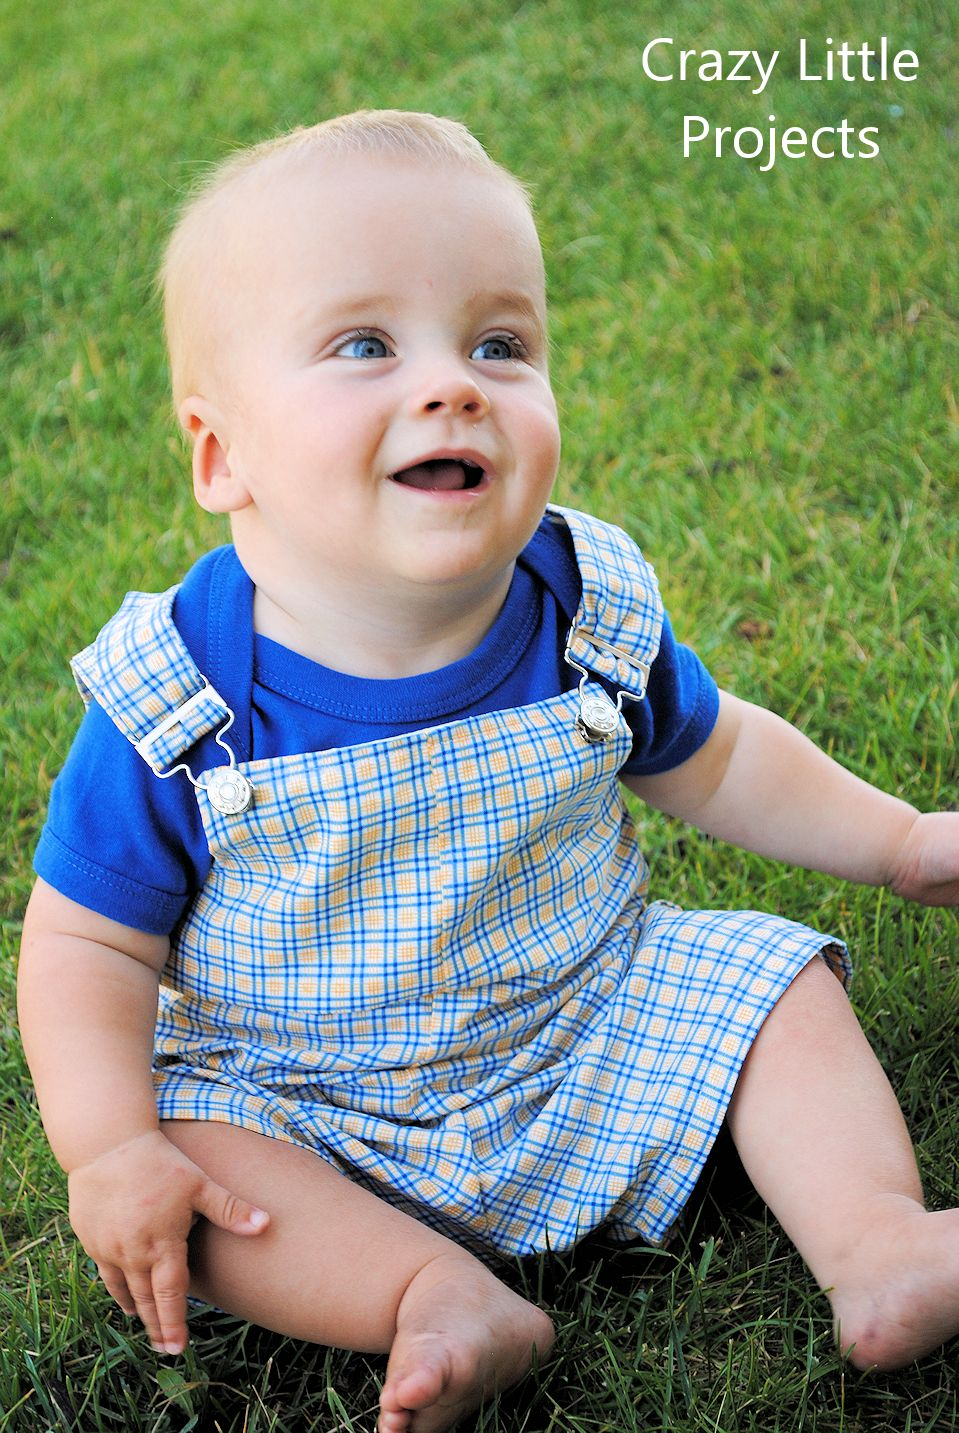 Shop baby boy best overalls at inerloadsr5s.gq Shop OshKosh B'gosh, the most trusted name in kids and baby clothes, plus our world famous overalls.